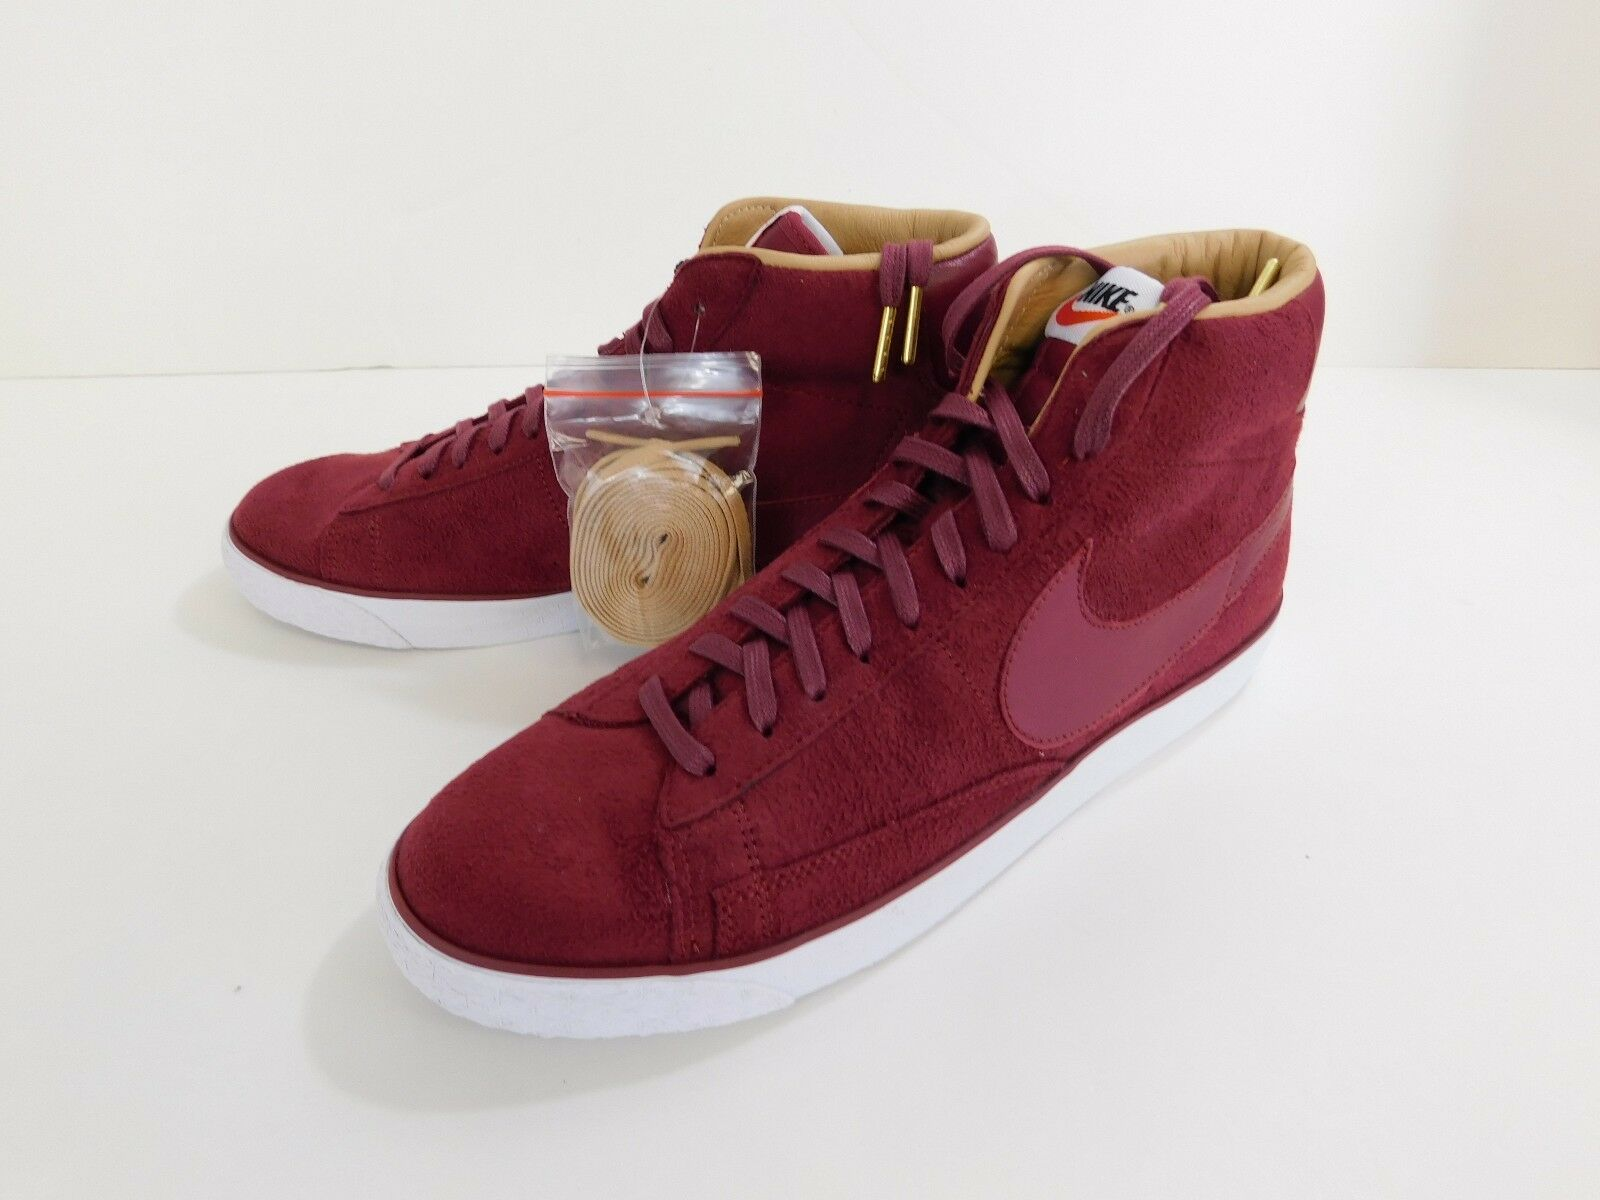 NEW MEN'S NIKE BLAZER HIGH SP SHOES Price reduction Brand discount